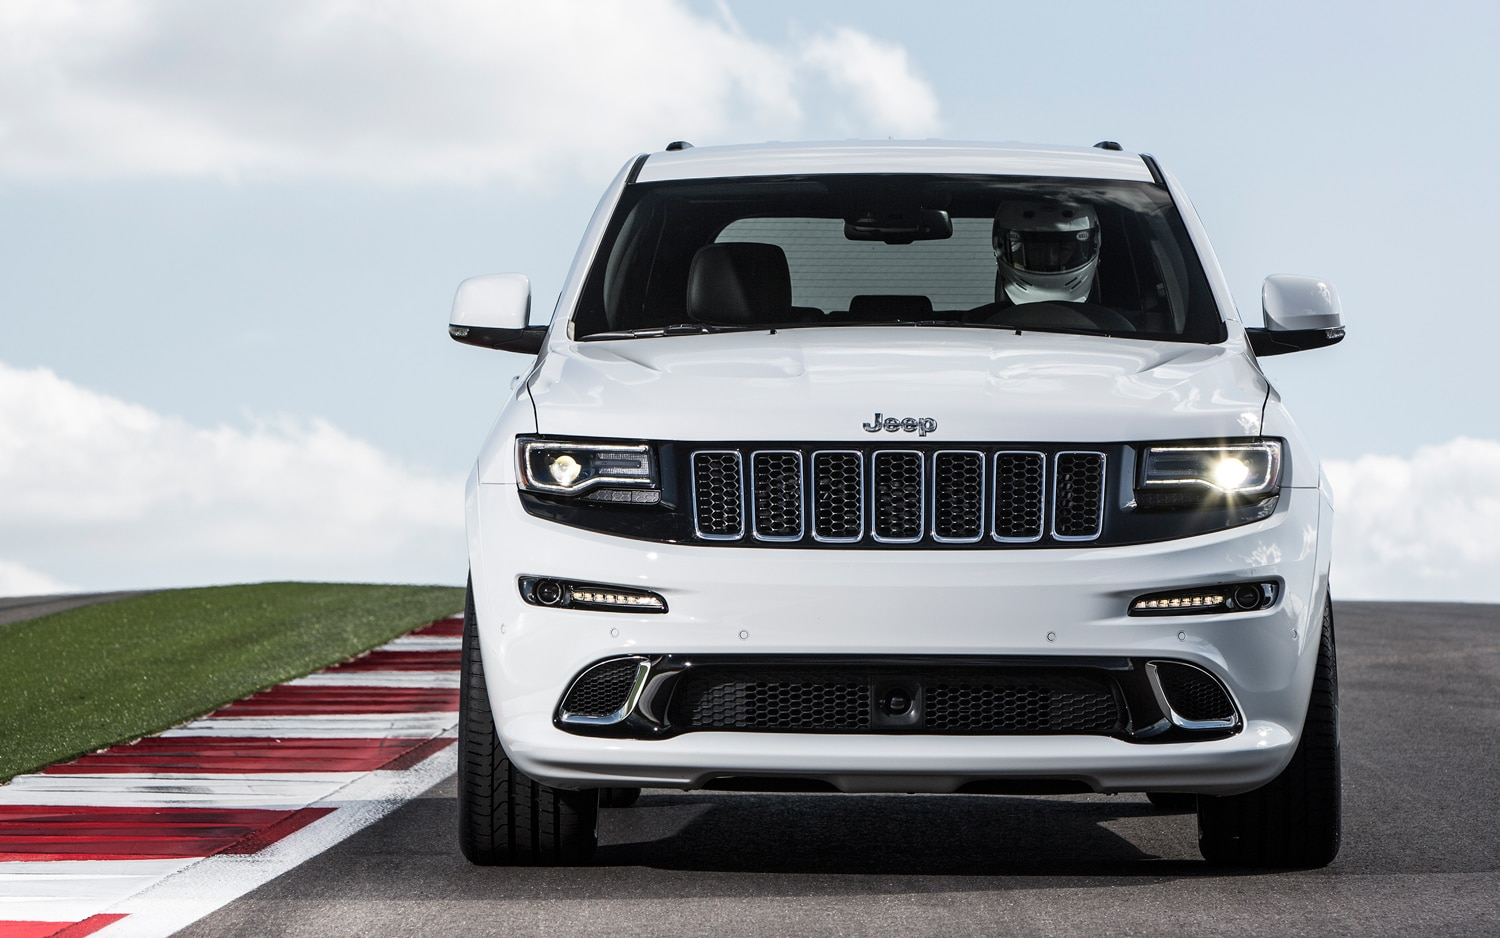 2014 Jeep Grand Cherokee SRT Front Profile